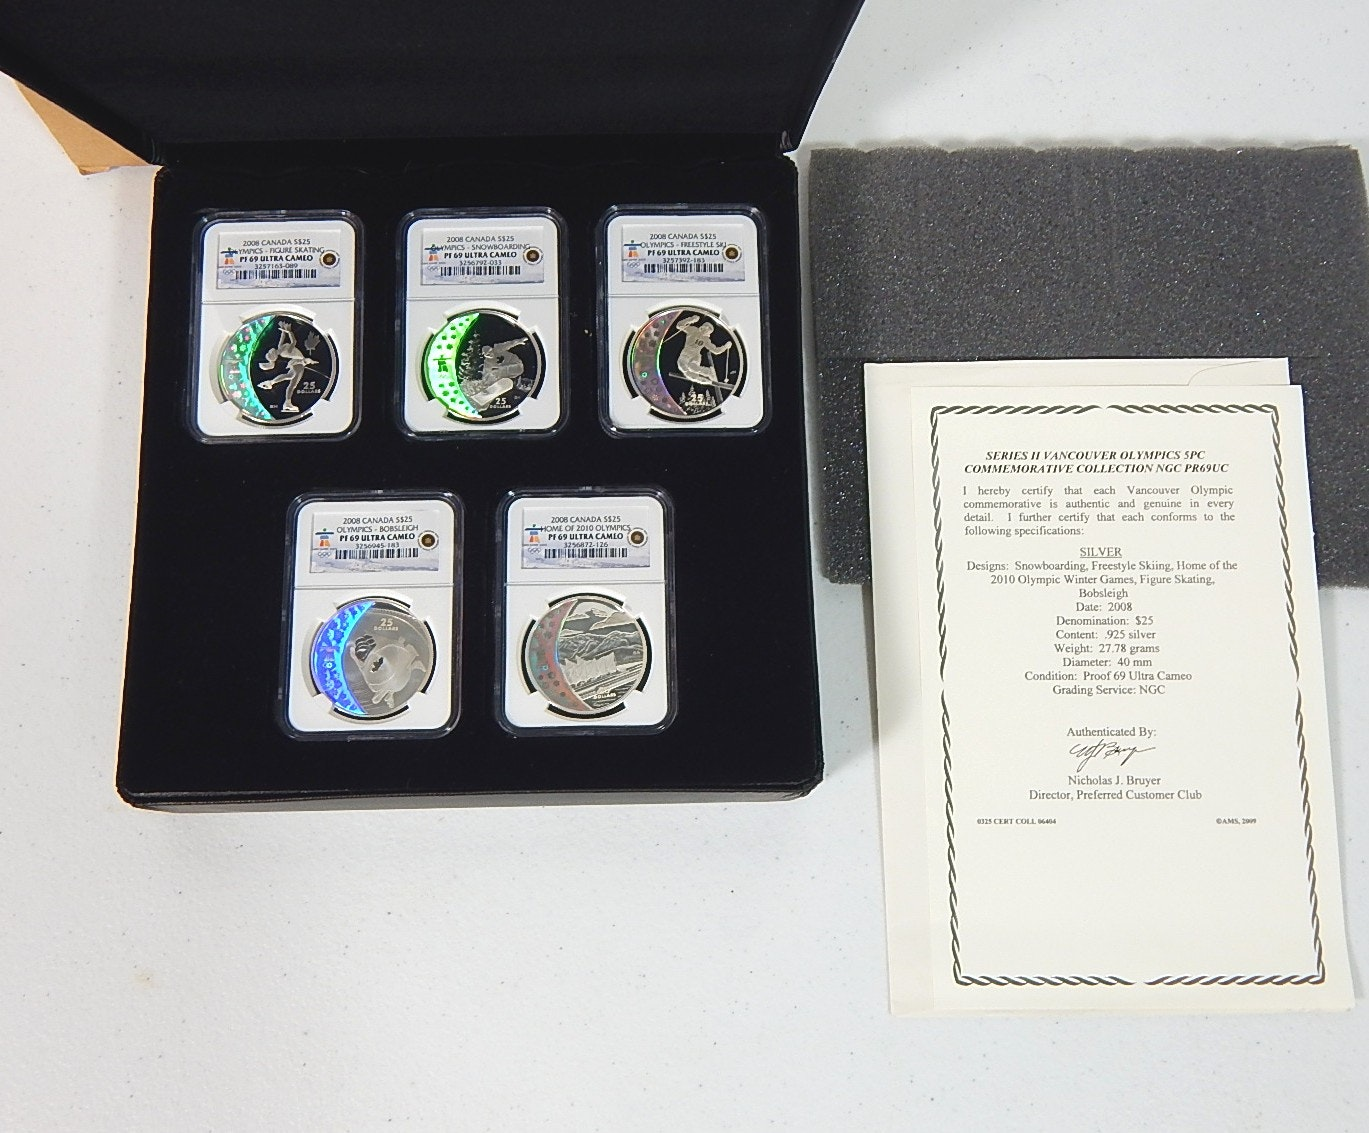 2008 Ultra Cameo Series II Vancouver Olympics 5 Pc Silver Commemoratives